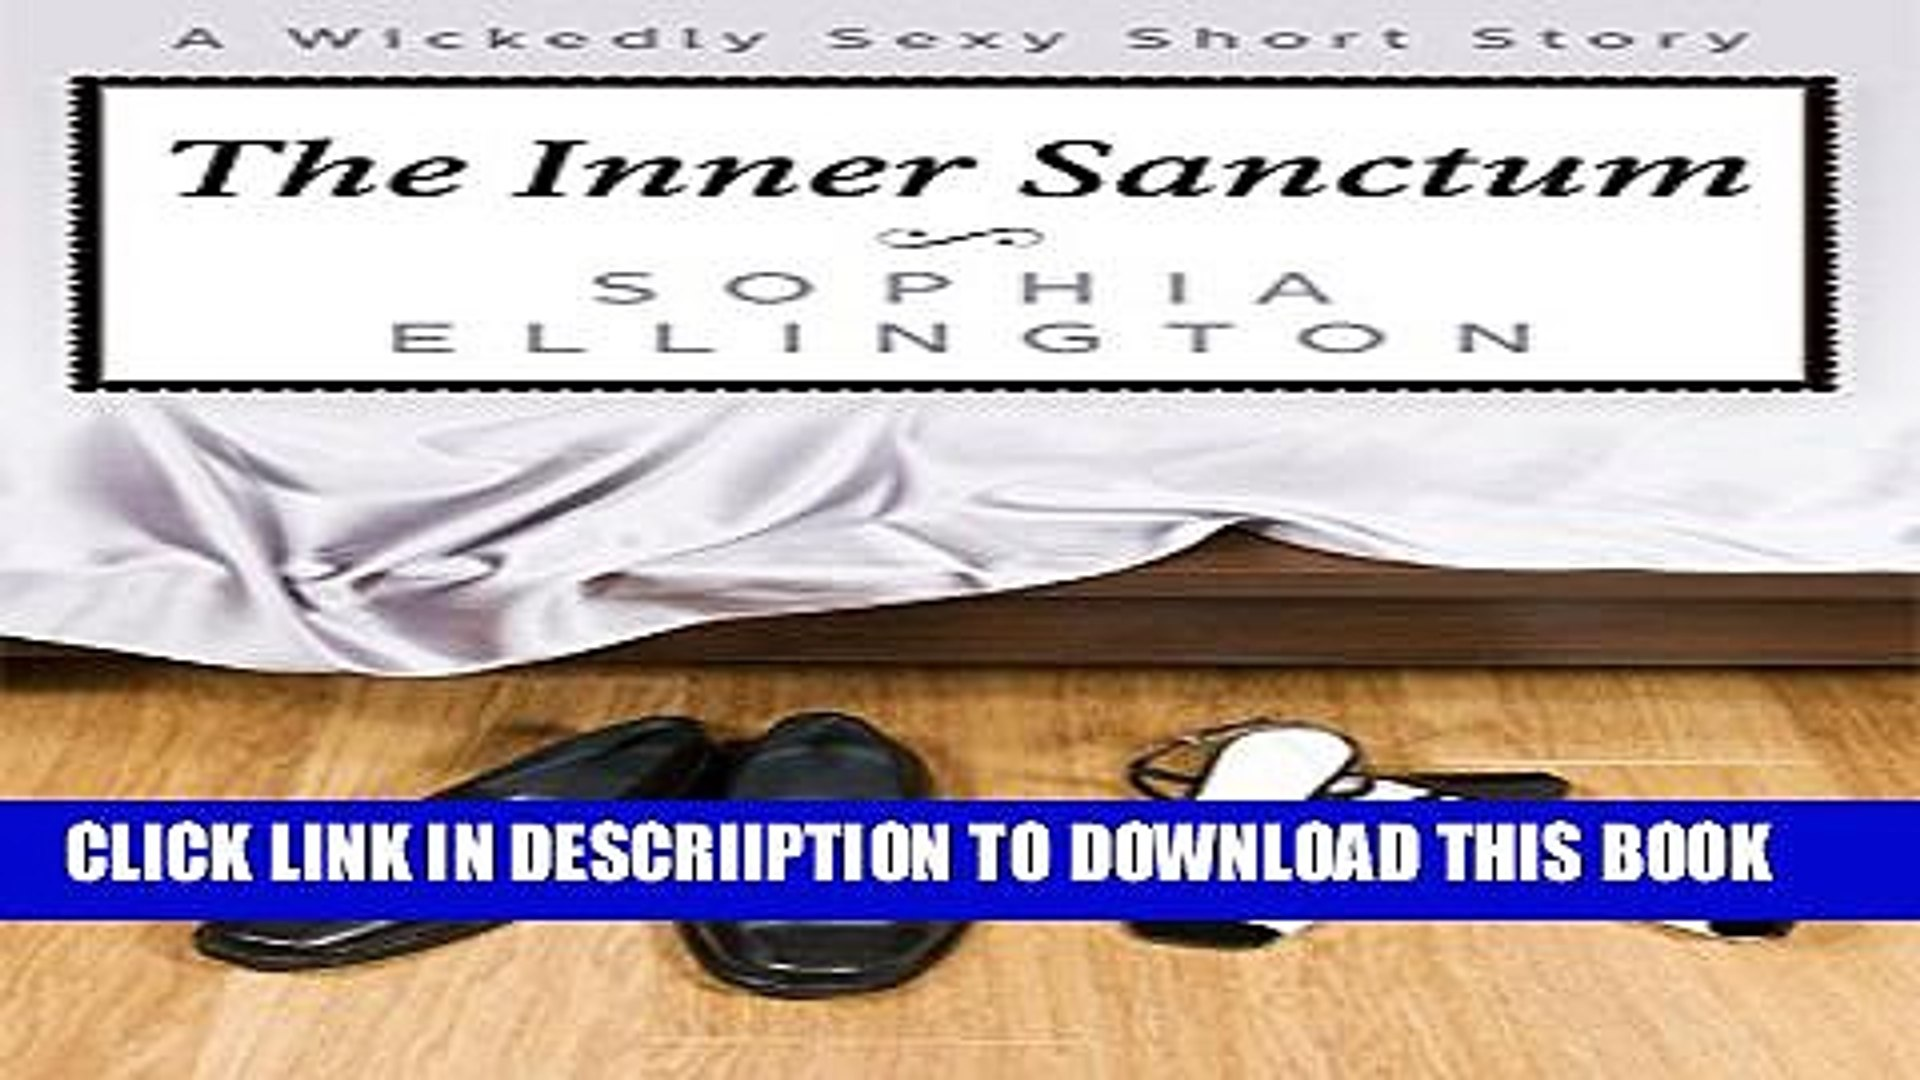 [PDF] The Inner Sanctum: A Wickedly Sexy Short Story (The Wickedly Sexy Short Story collection